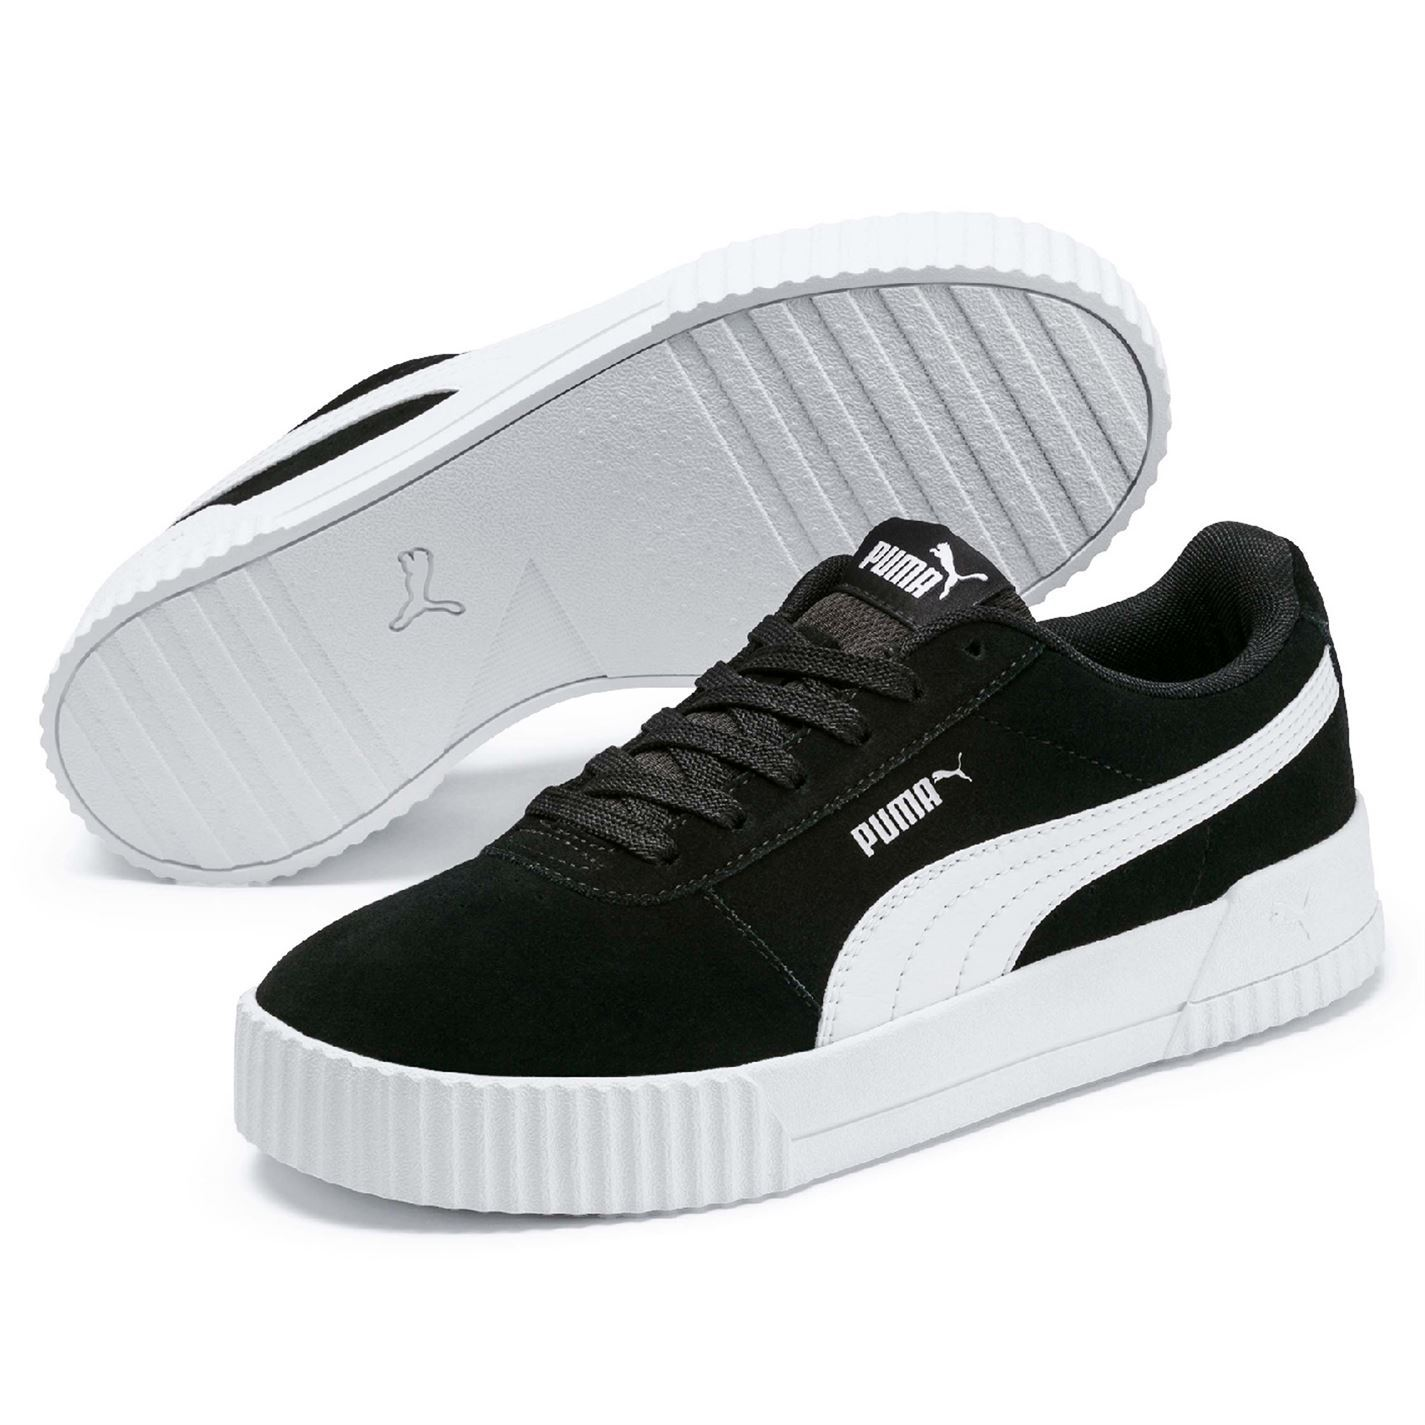 Details about Puma Carina Suede Womens Trainers Shoes Ladies Casual Footwear